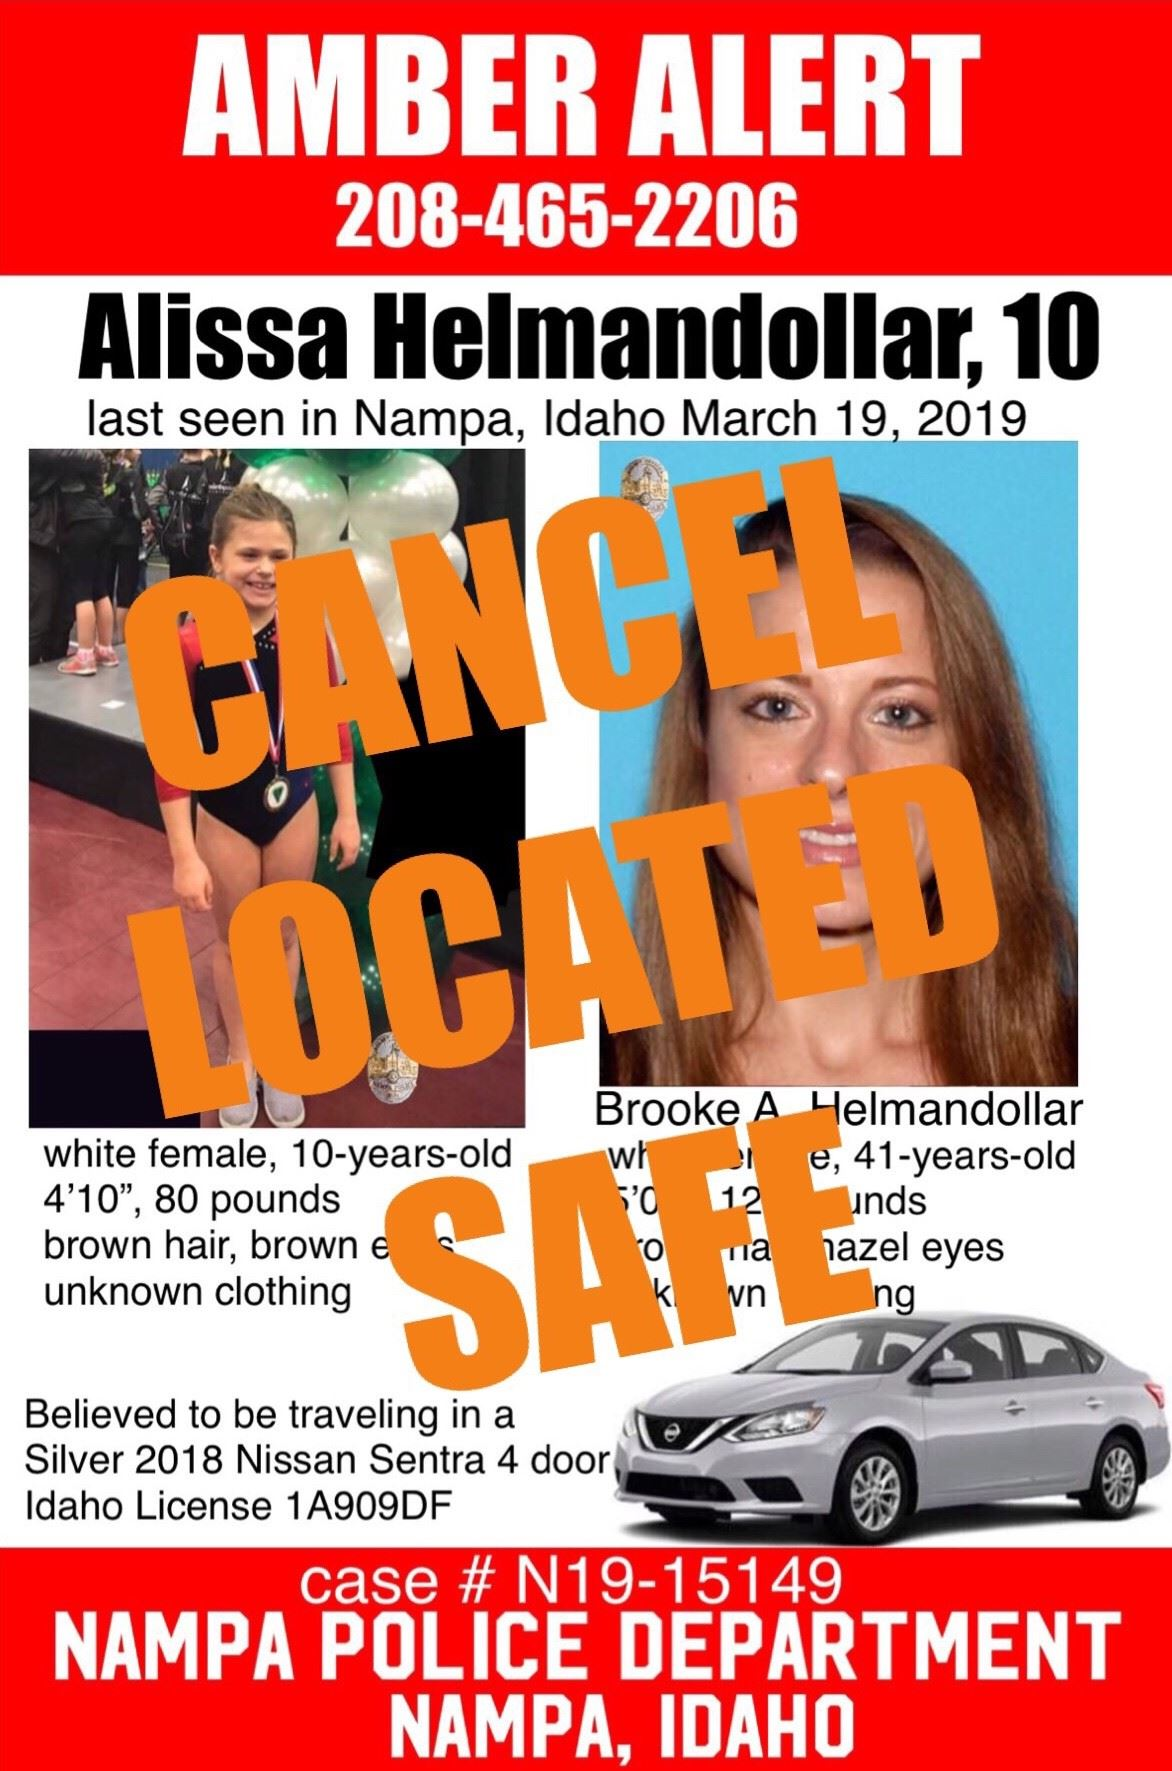 Cancel Amber Alert flyer. Flyer of missing child Alissa and mother, Brooke, with vehicle type that t